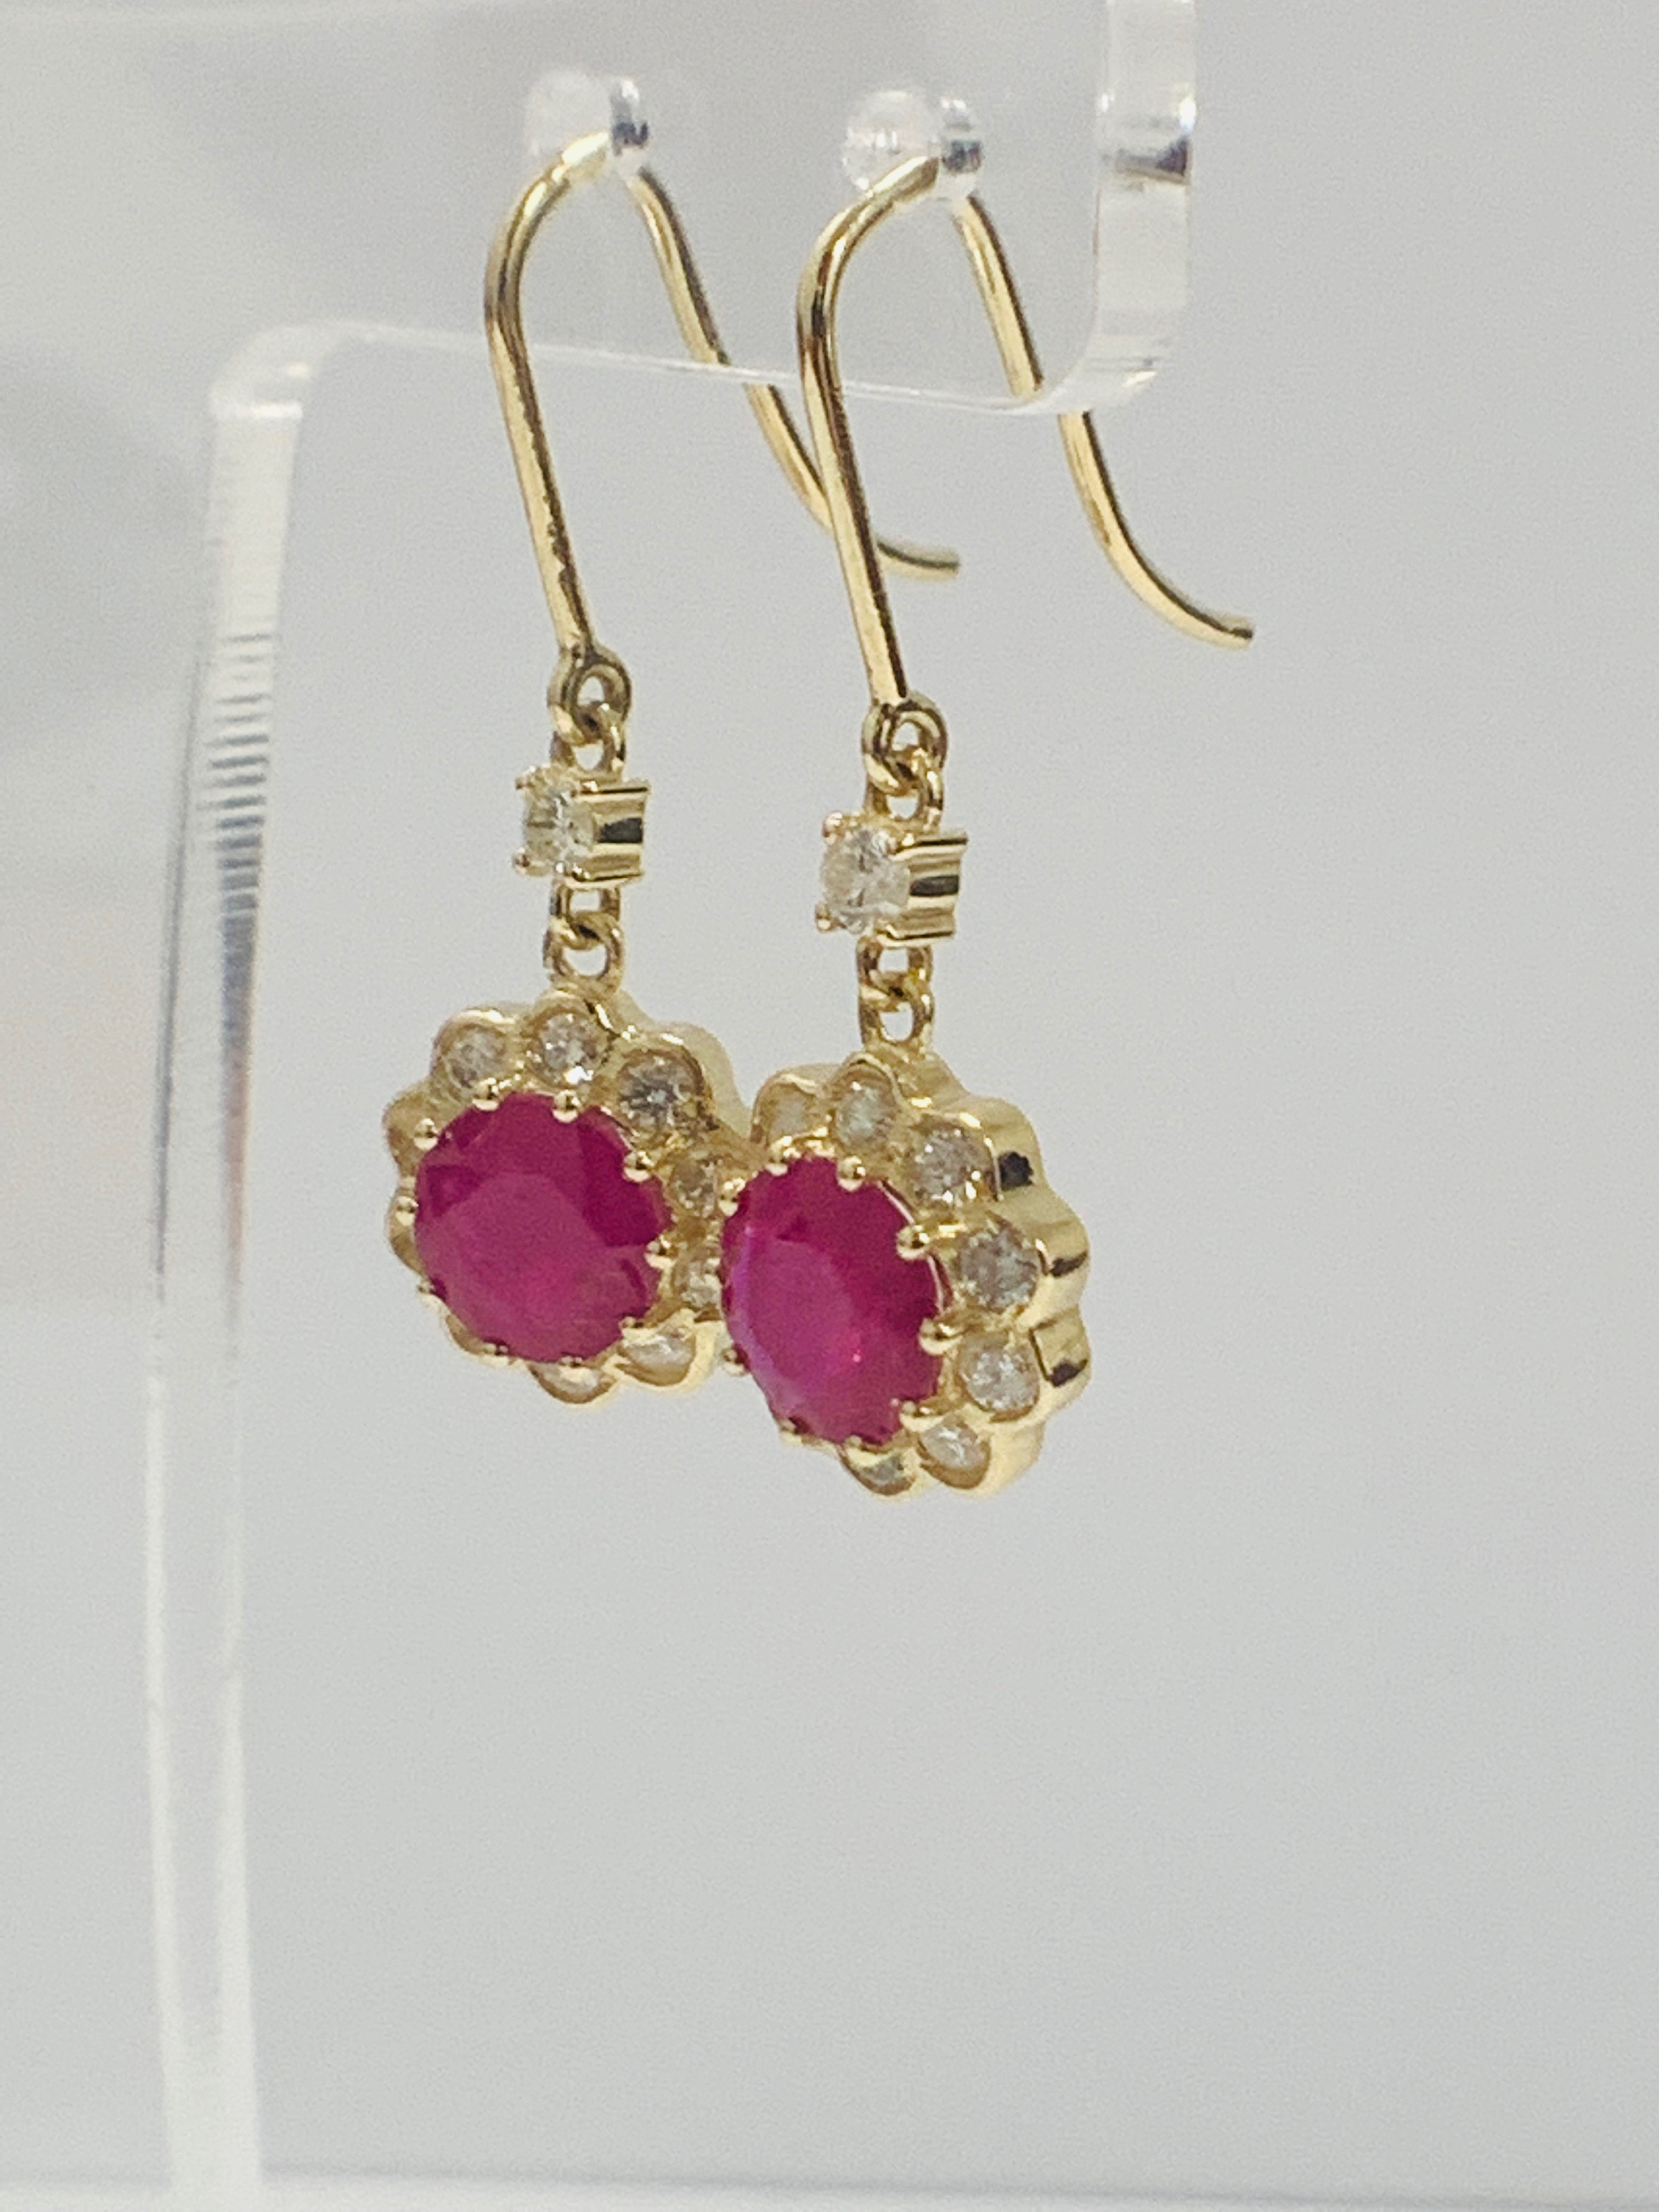 14ct Yellow Gold Ruby and Diamond earrings featuring, 2 round cut, red Rubies (2.22ct TSW) - Image 5 of 8